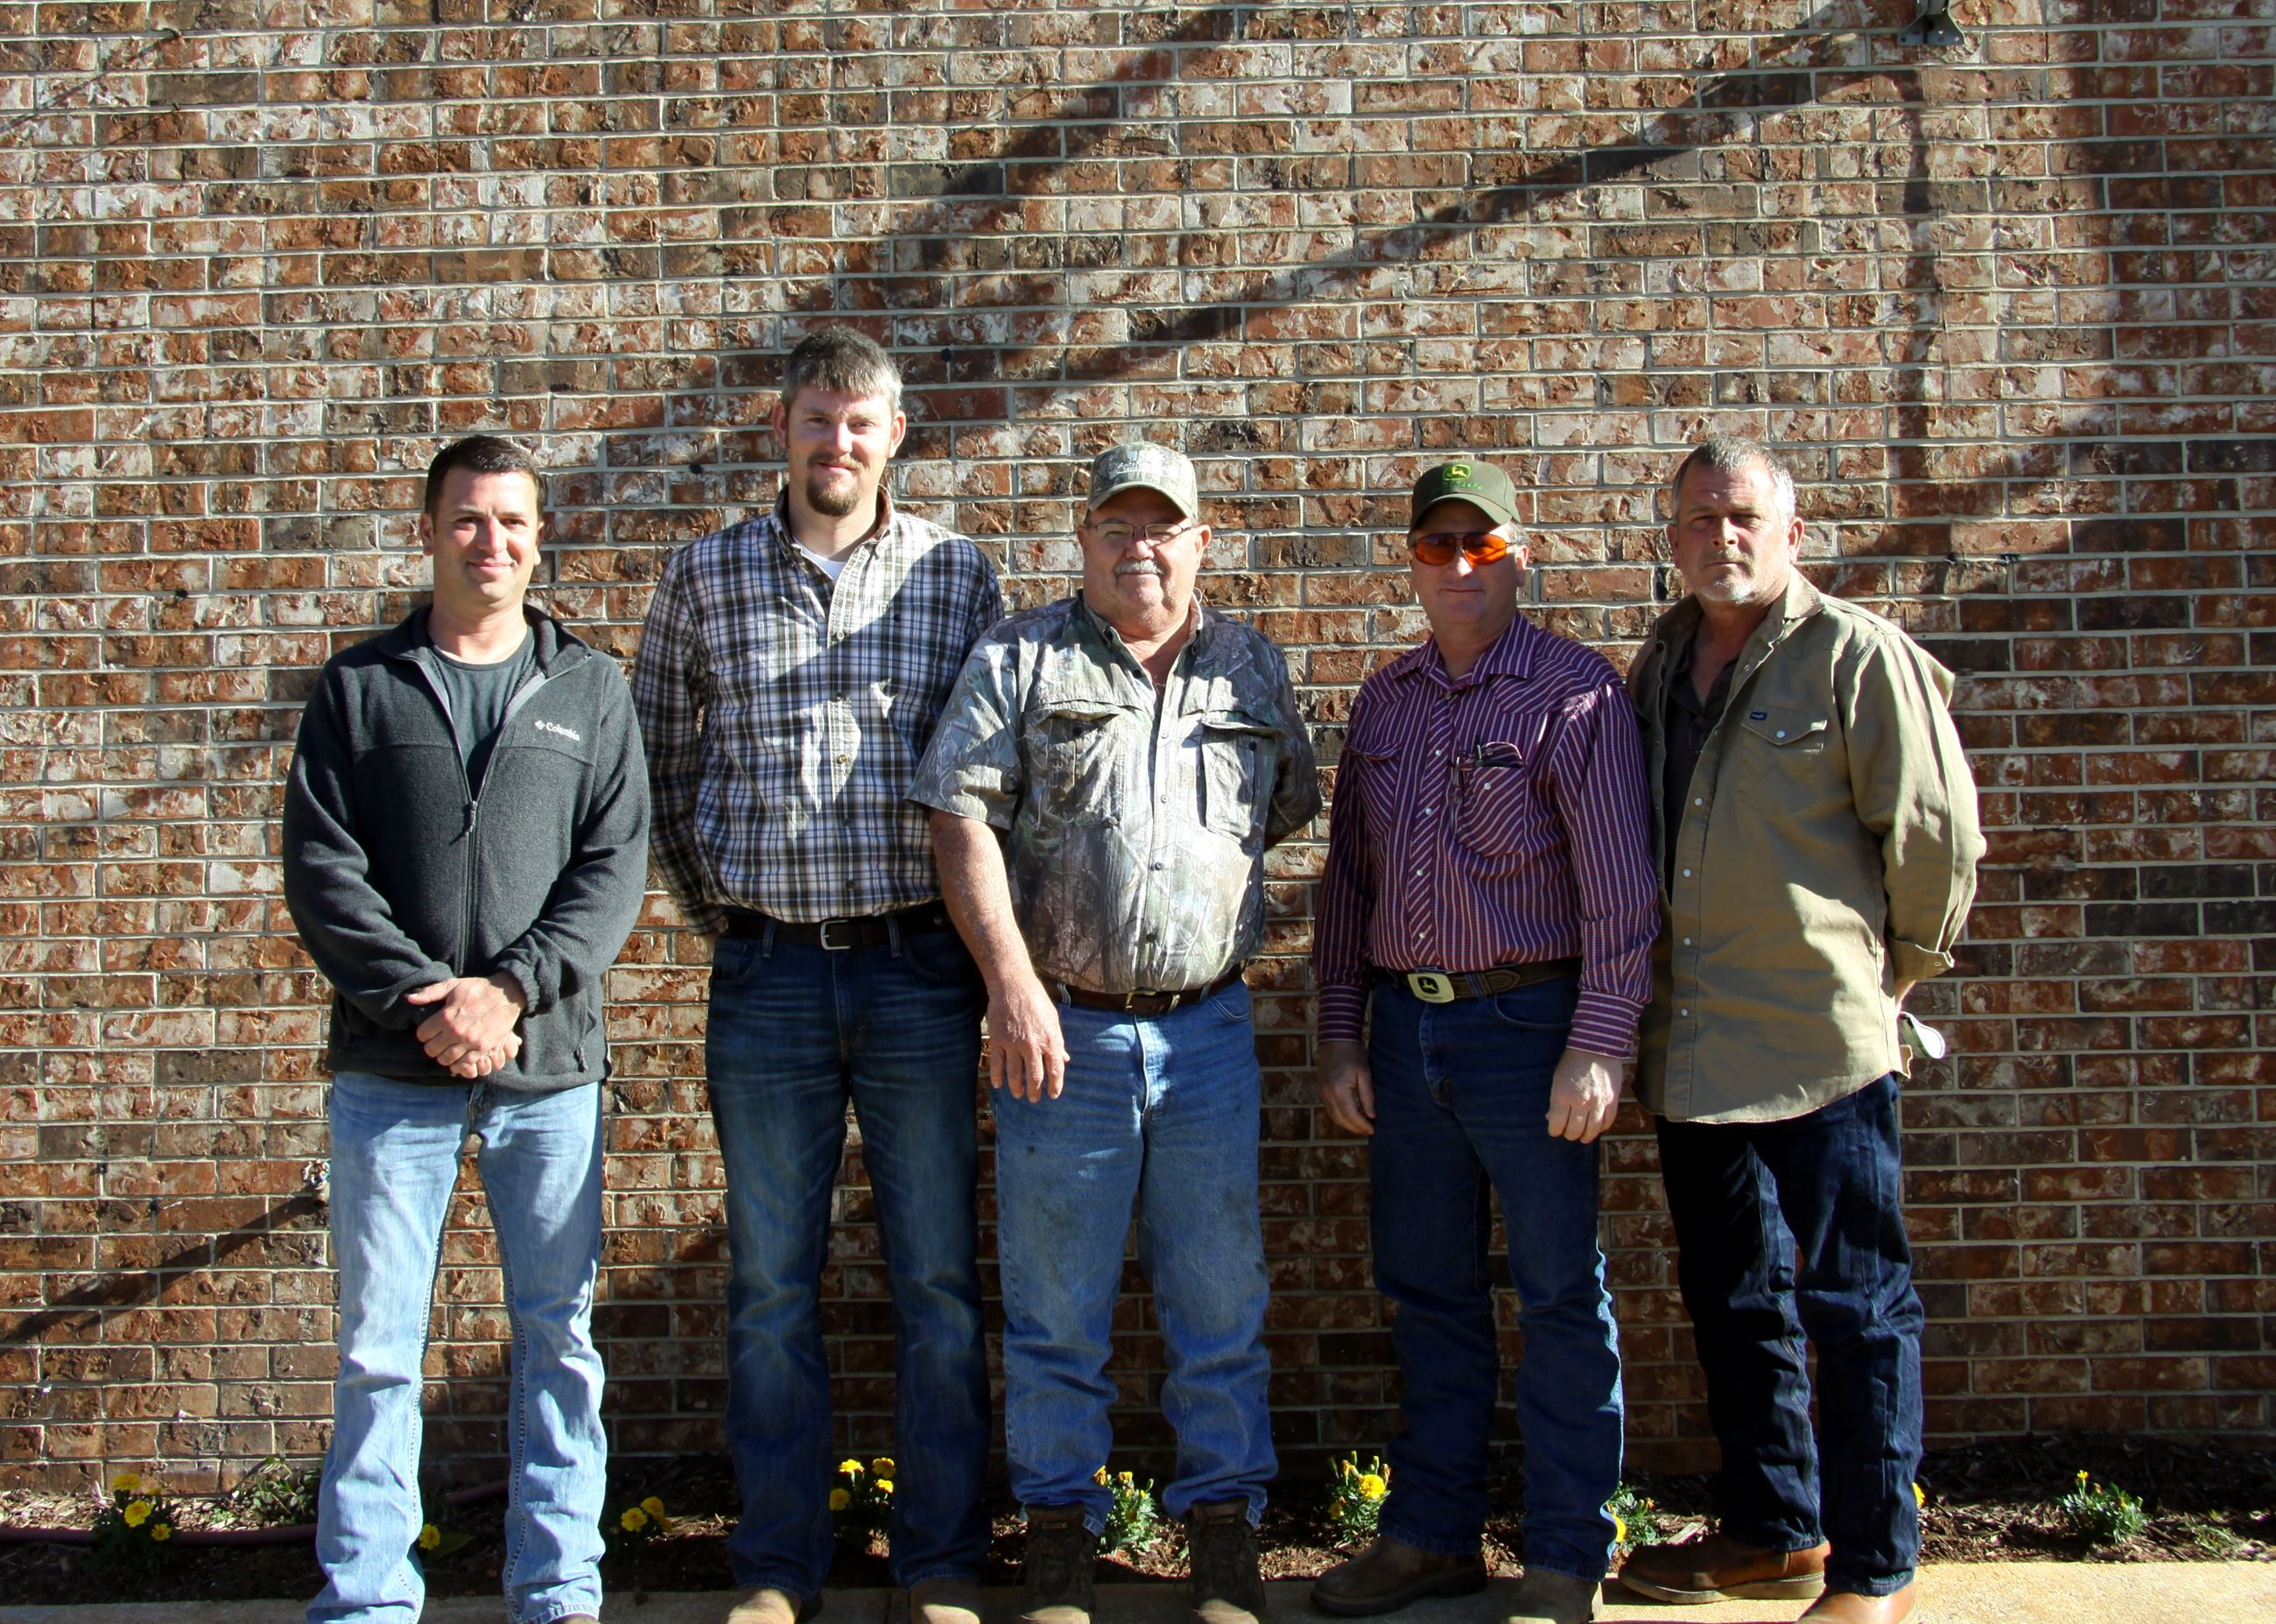 Image Left to Right, Lucas Killam, Tanner Laney, Burlin Findley, Mickey Diamond, & John Salter.